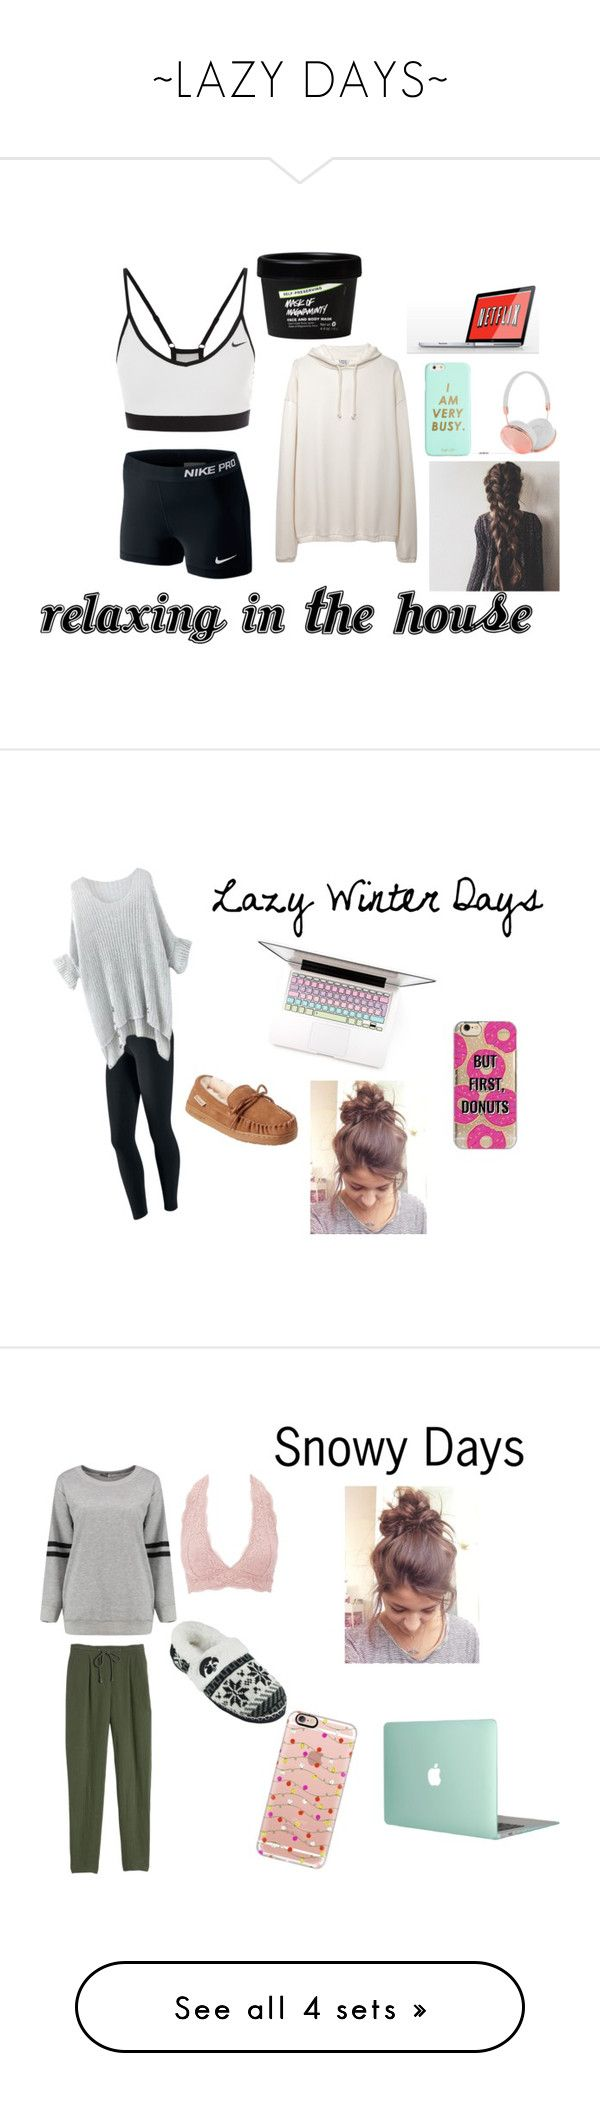 """""""~LAZY DAYS~"""" by jessica-macfarlane ❤ liked on Polyvore featuring NIKE, Base Range, ban.do, Frends, Bearpaw, Toshiba, Agent 18, Charlotte Russe, Rebecca Taylor and Casetify"""